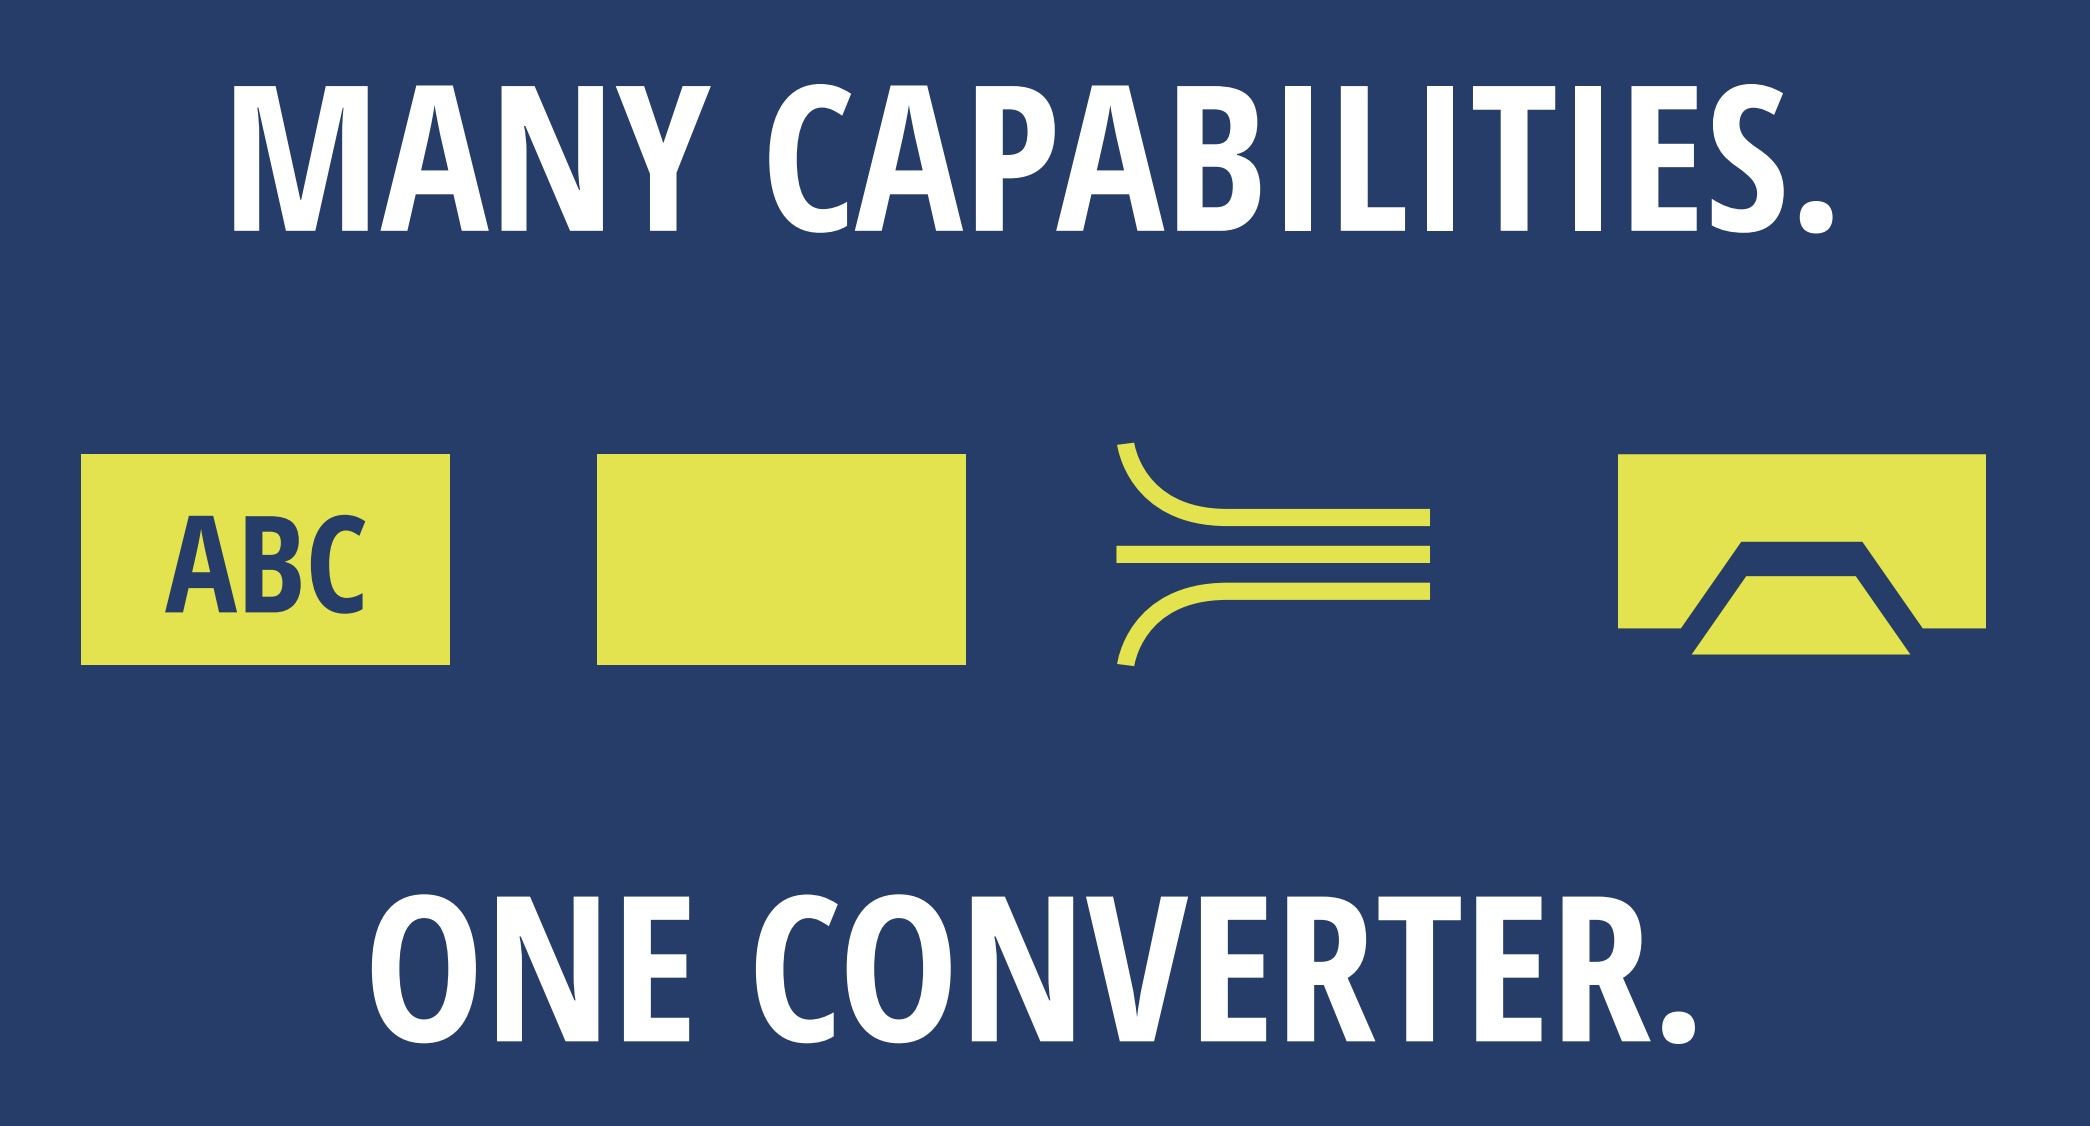 many-capabilities-one-converter.png